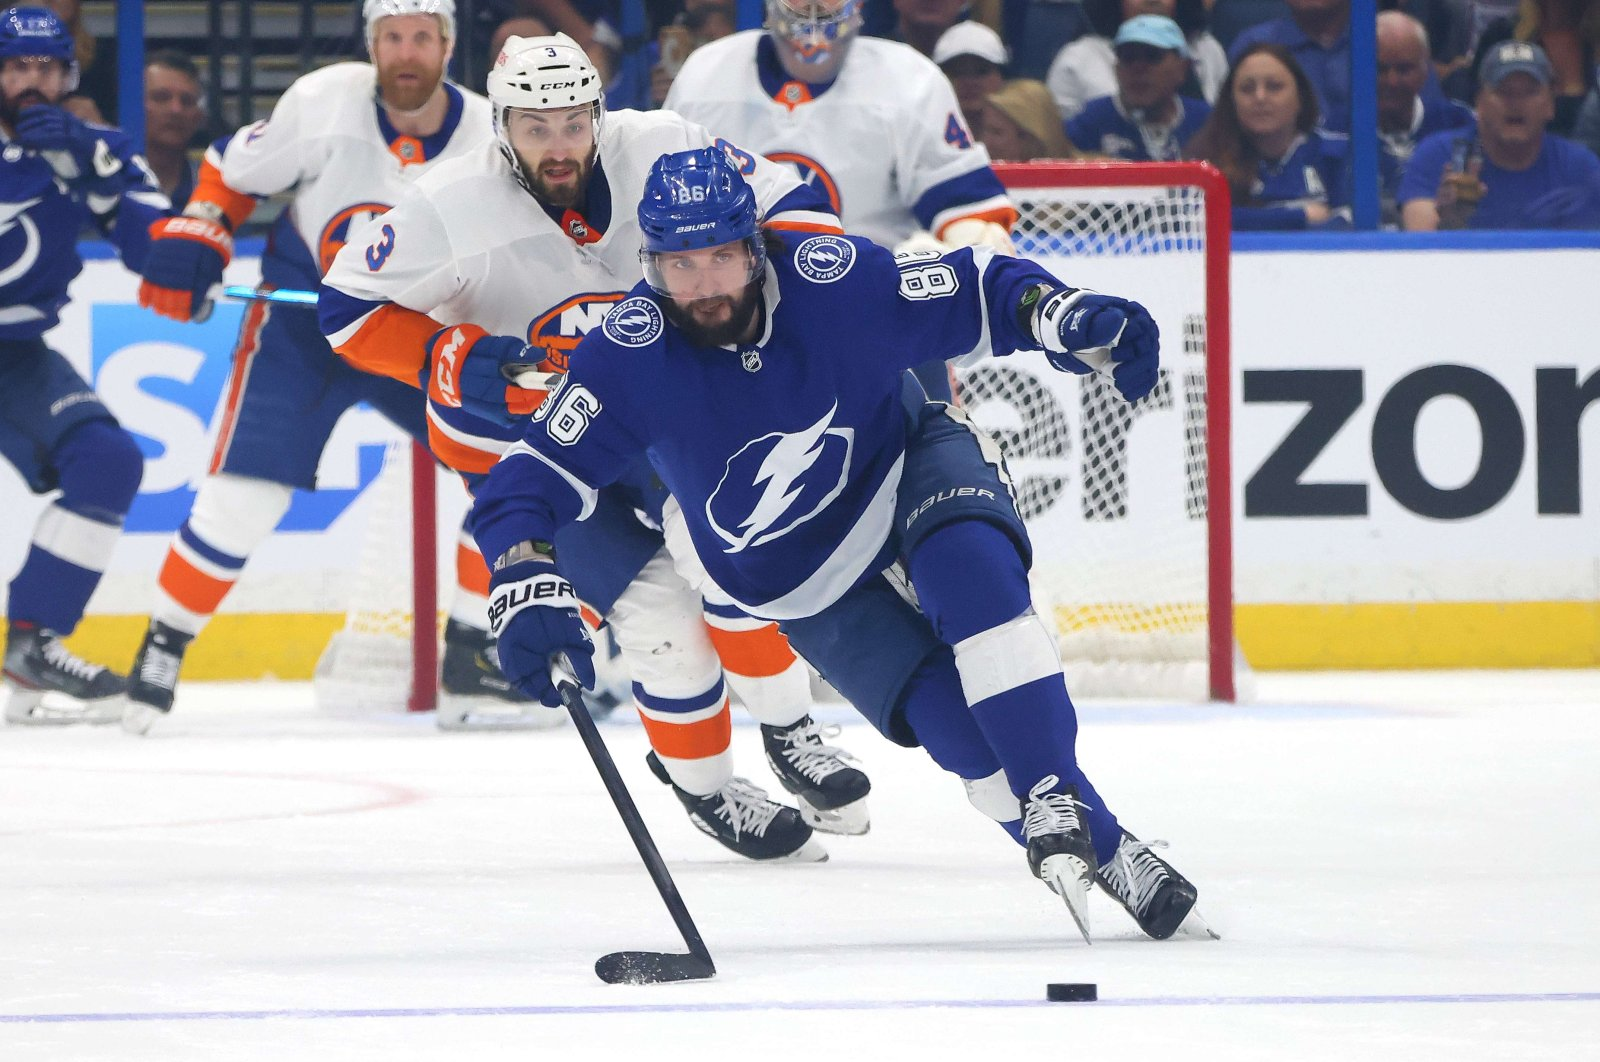 Nikita Kucherov #86 of the Tampa Bay Lightning attempts to play the puck with Adam Pelech #3 of the New York Islanders in pursuit during the first period in Game Seven of the NHL Stanley Cup Semifinals at Amalie Arena, Tampa, Florida, June 25, 2021. (AFP Photo)